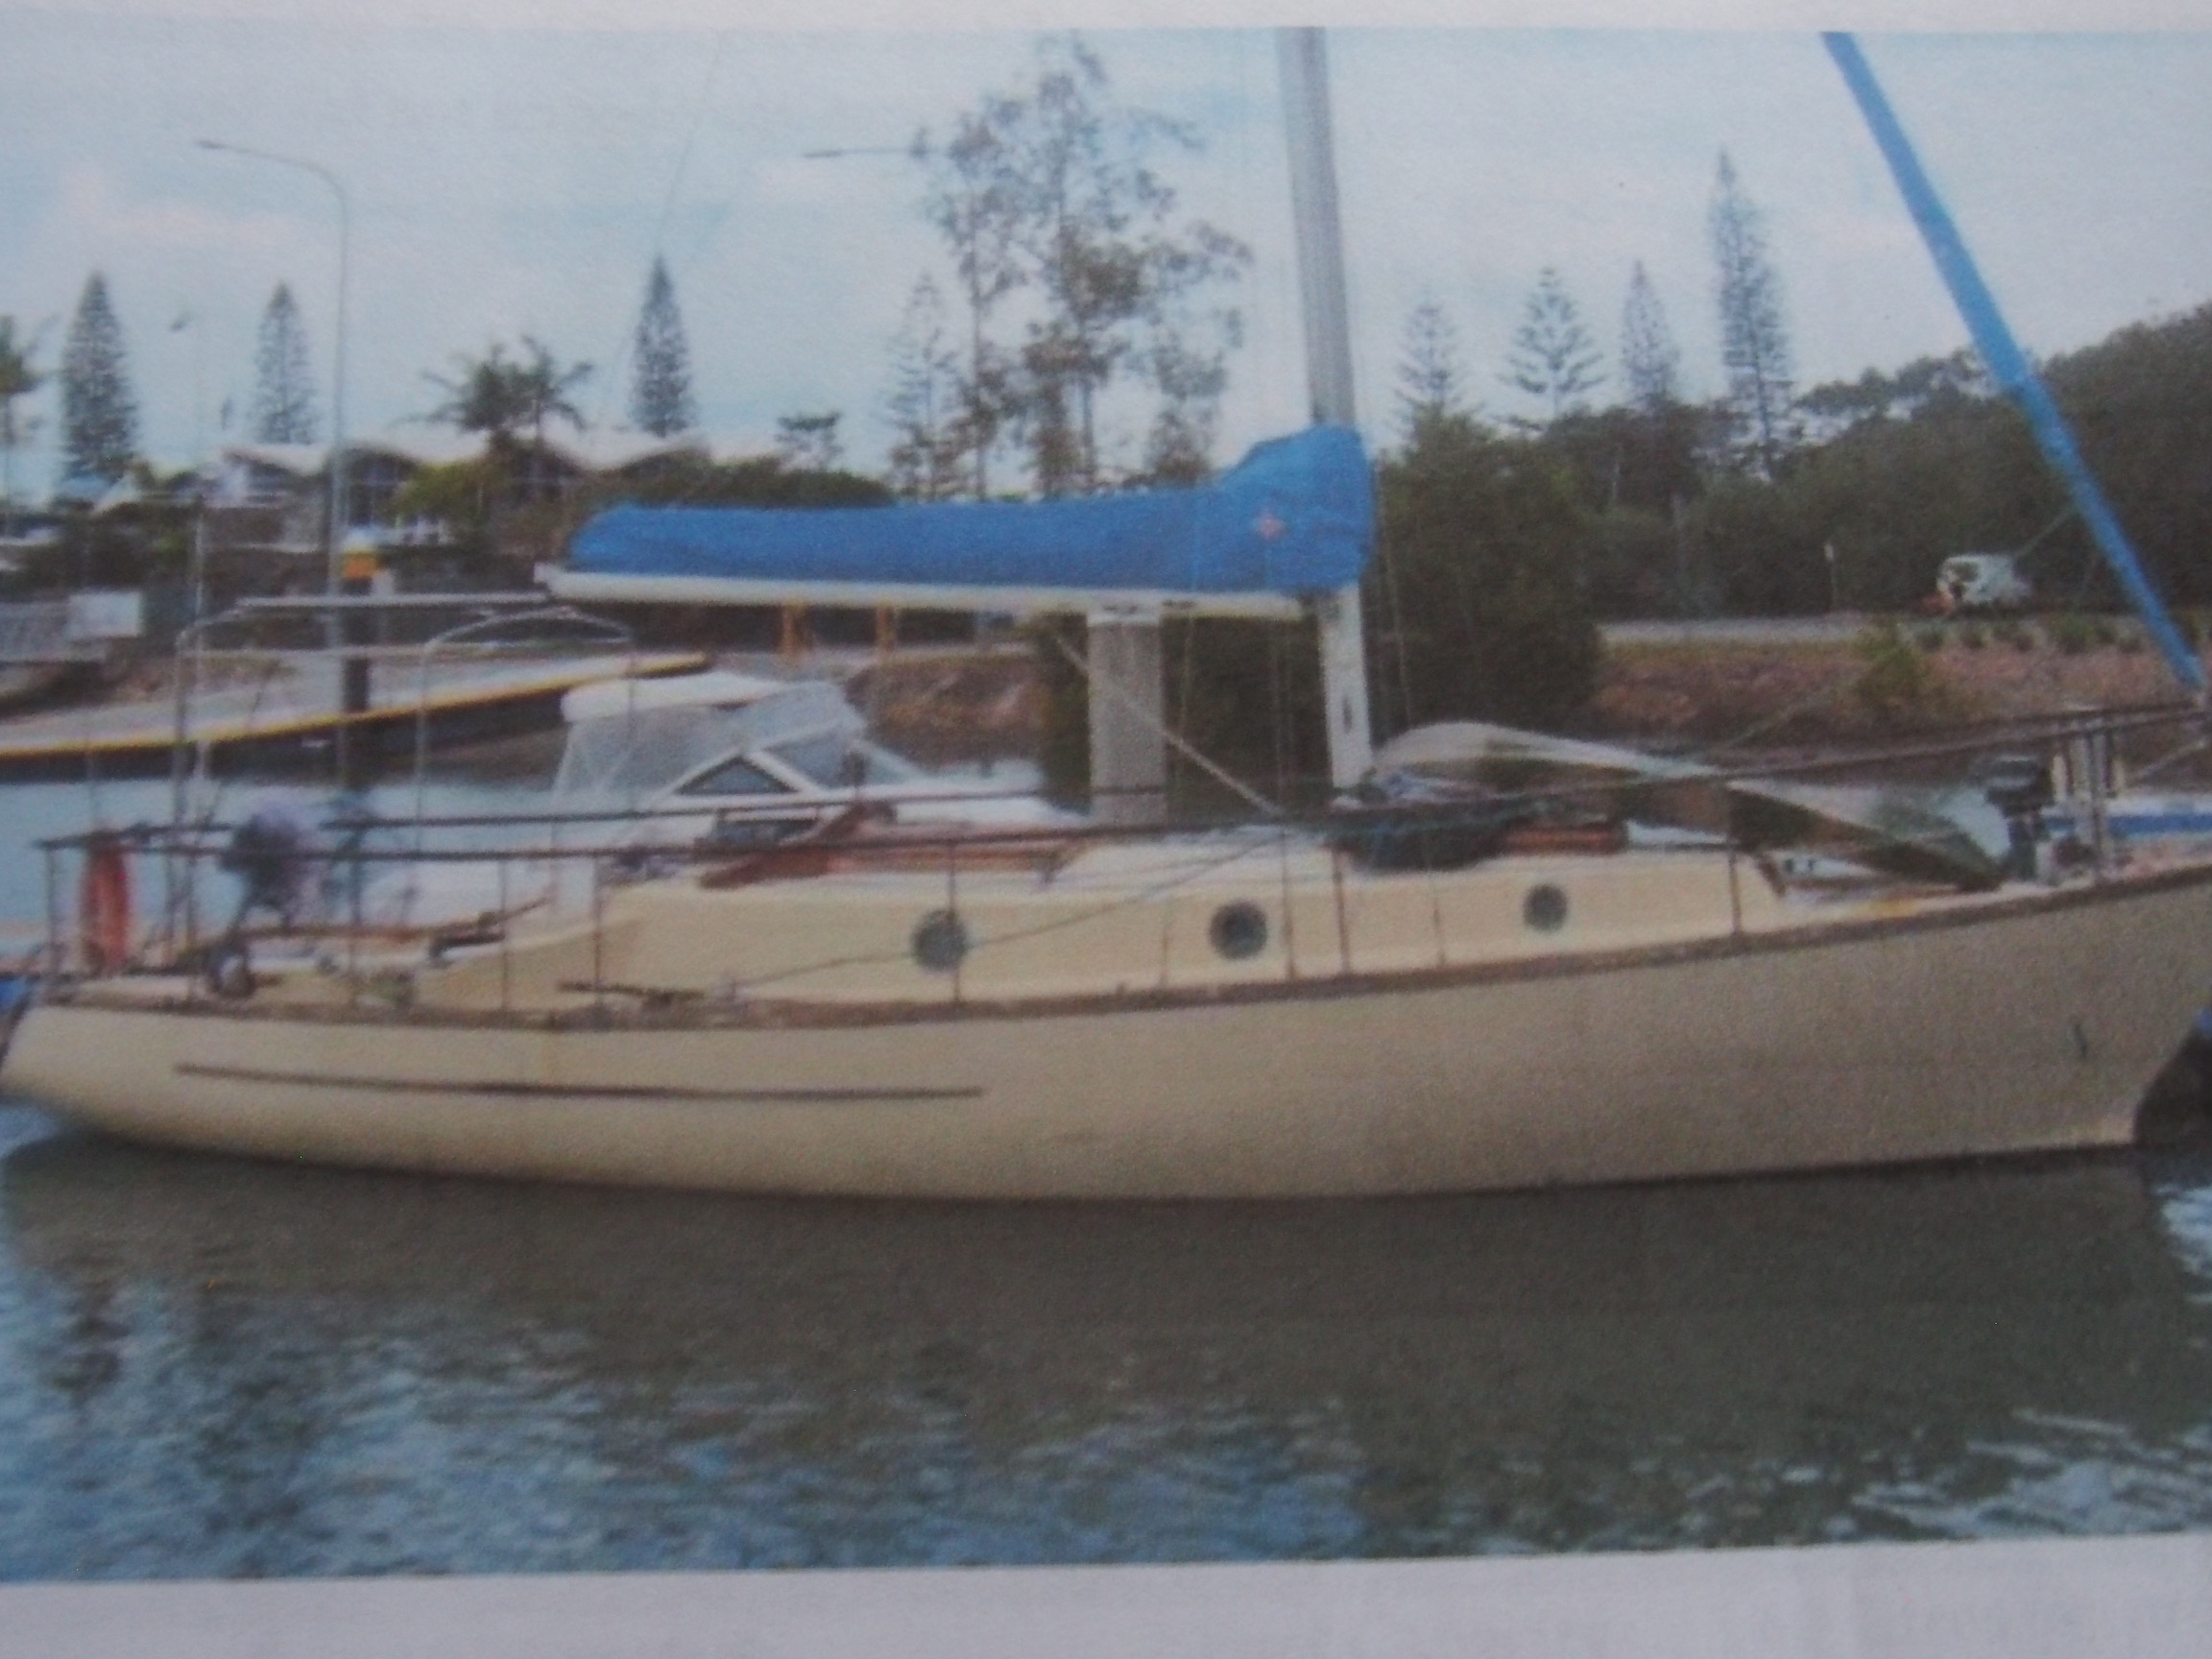 Kaufman 34 Fibreglass, Cruise Live-Aboard Now Just Add Some TLC